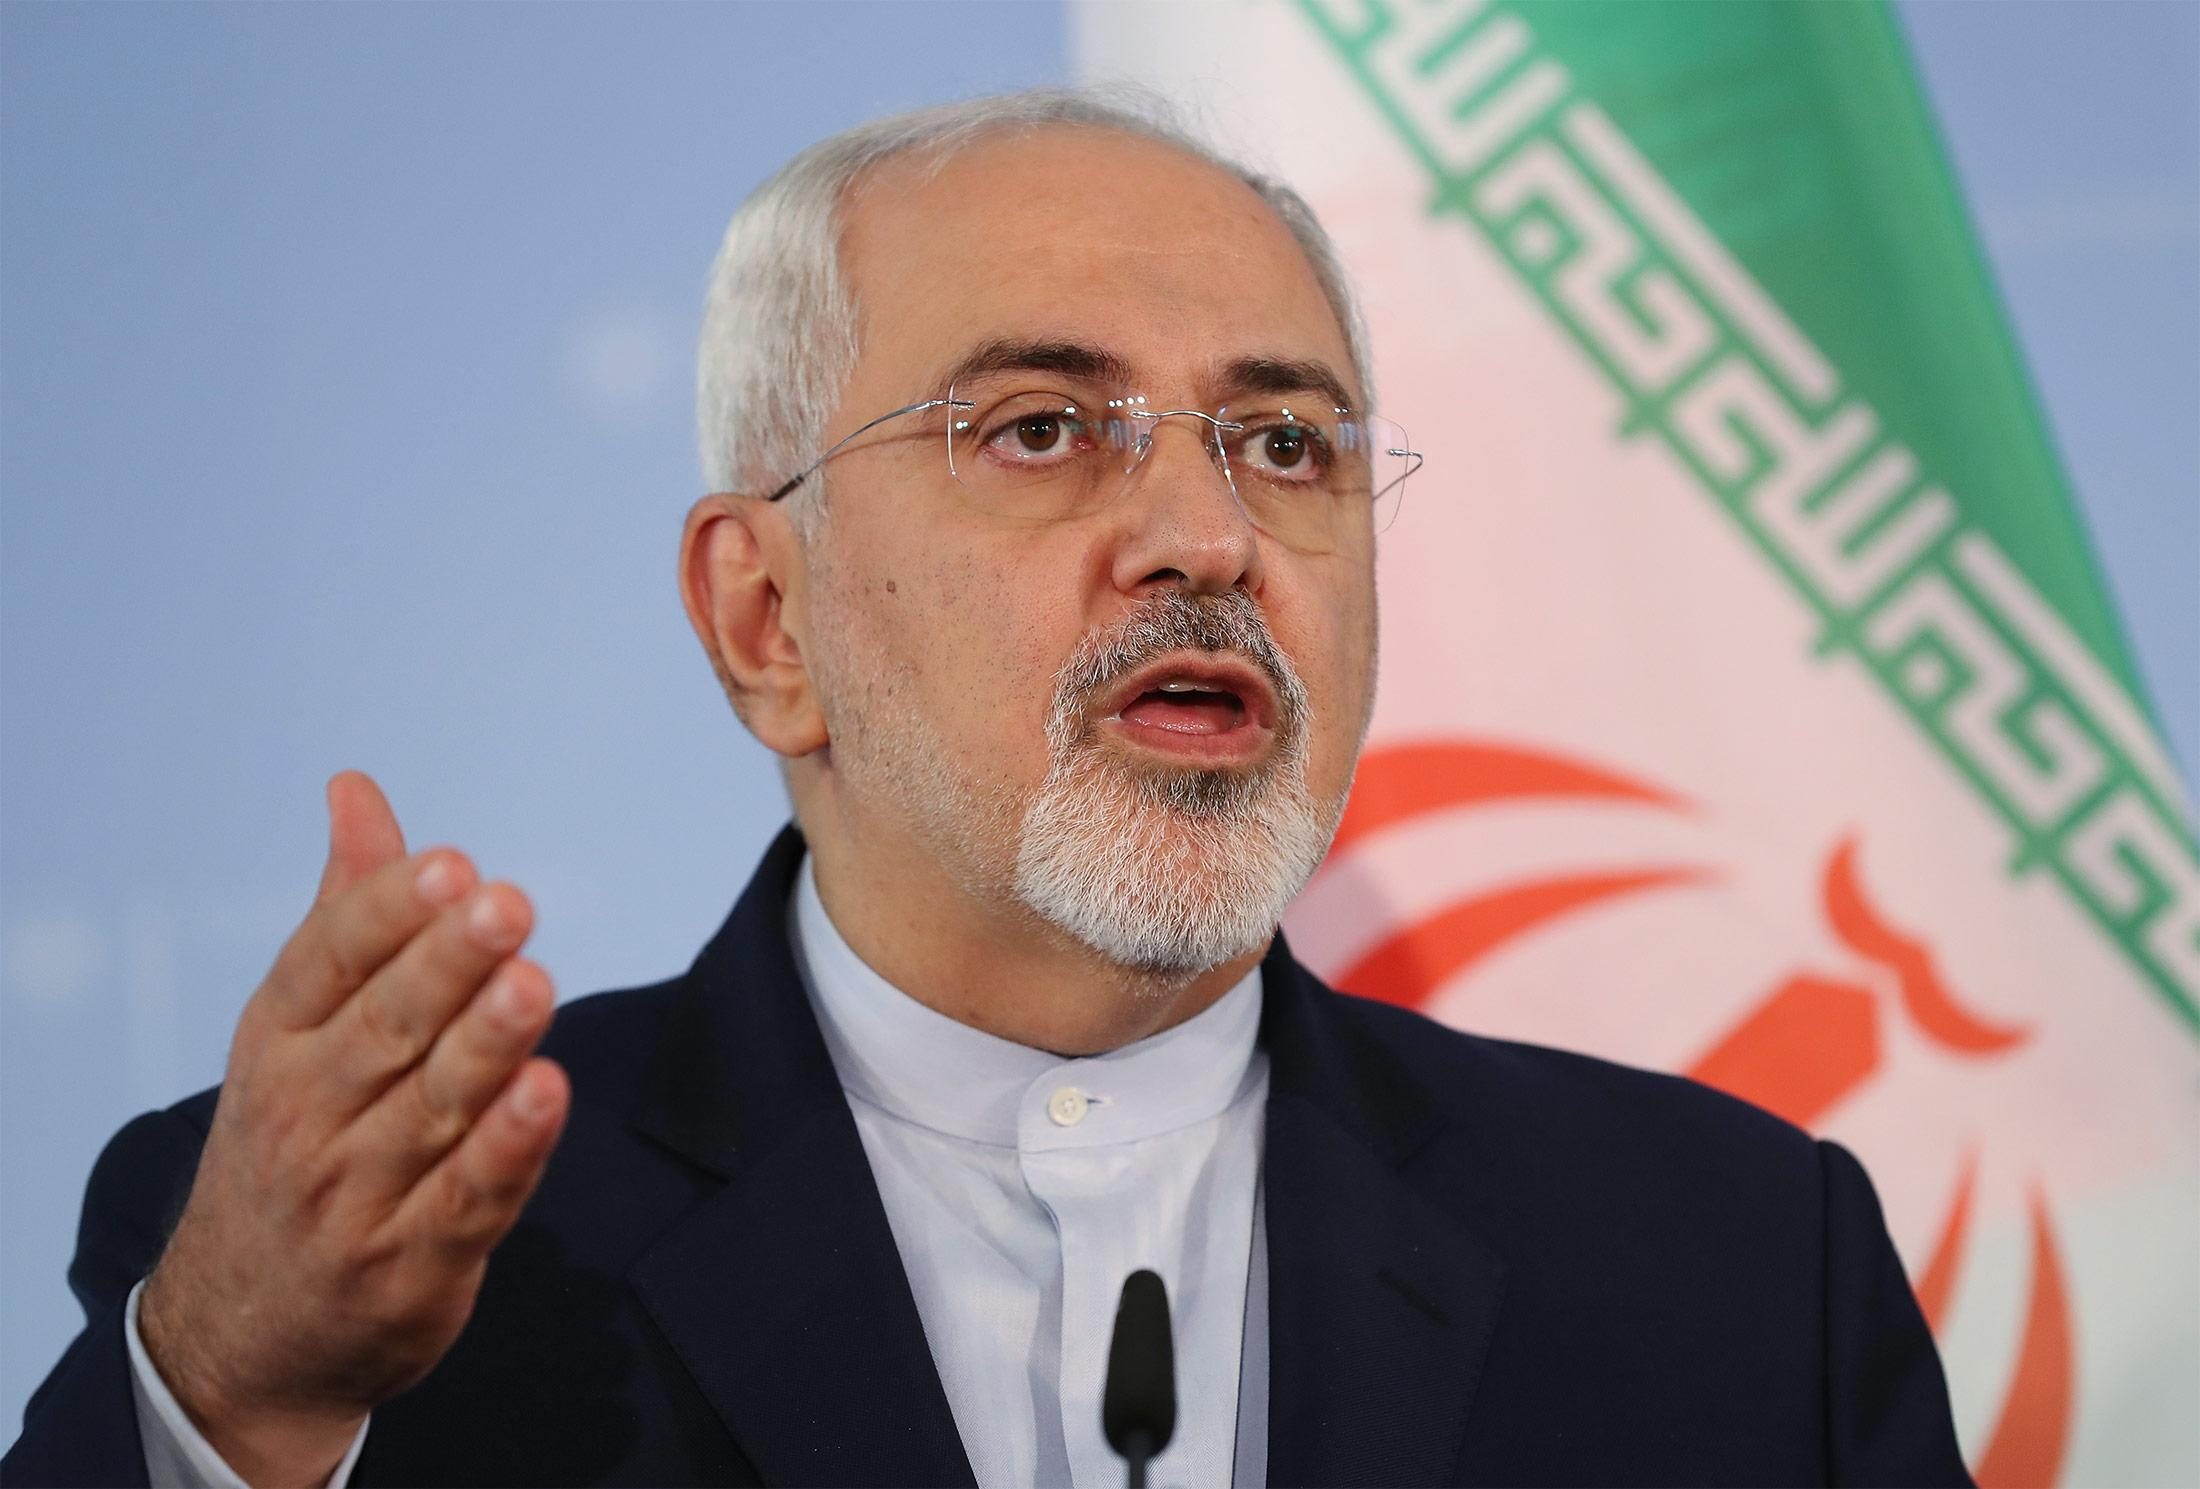 b3704c2134ef Iran Knows It Can't Bet on Trump 2020 Defeat as Sanctions Bite